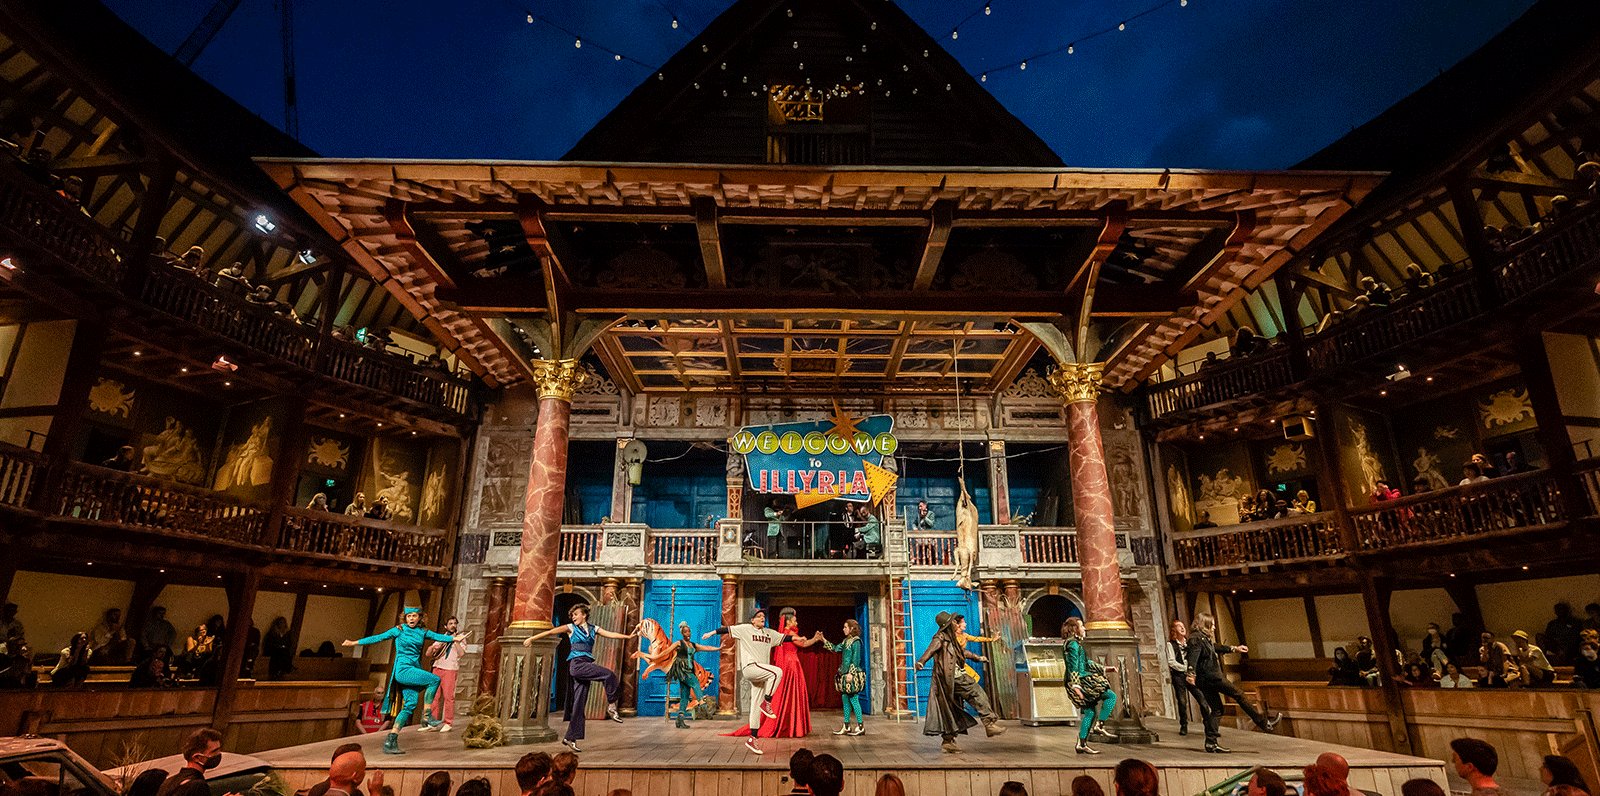 A dark cloudy night sky above the Globe Theatre stage: with fairy light hanging across the open-air roof.